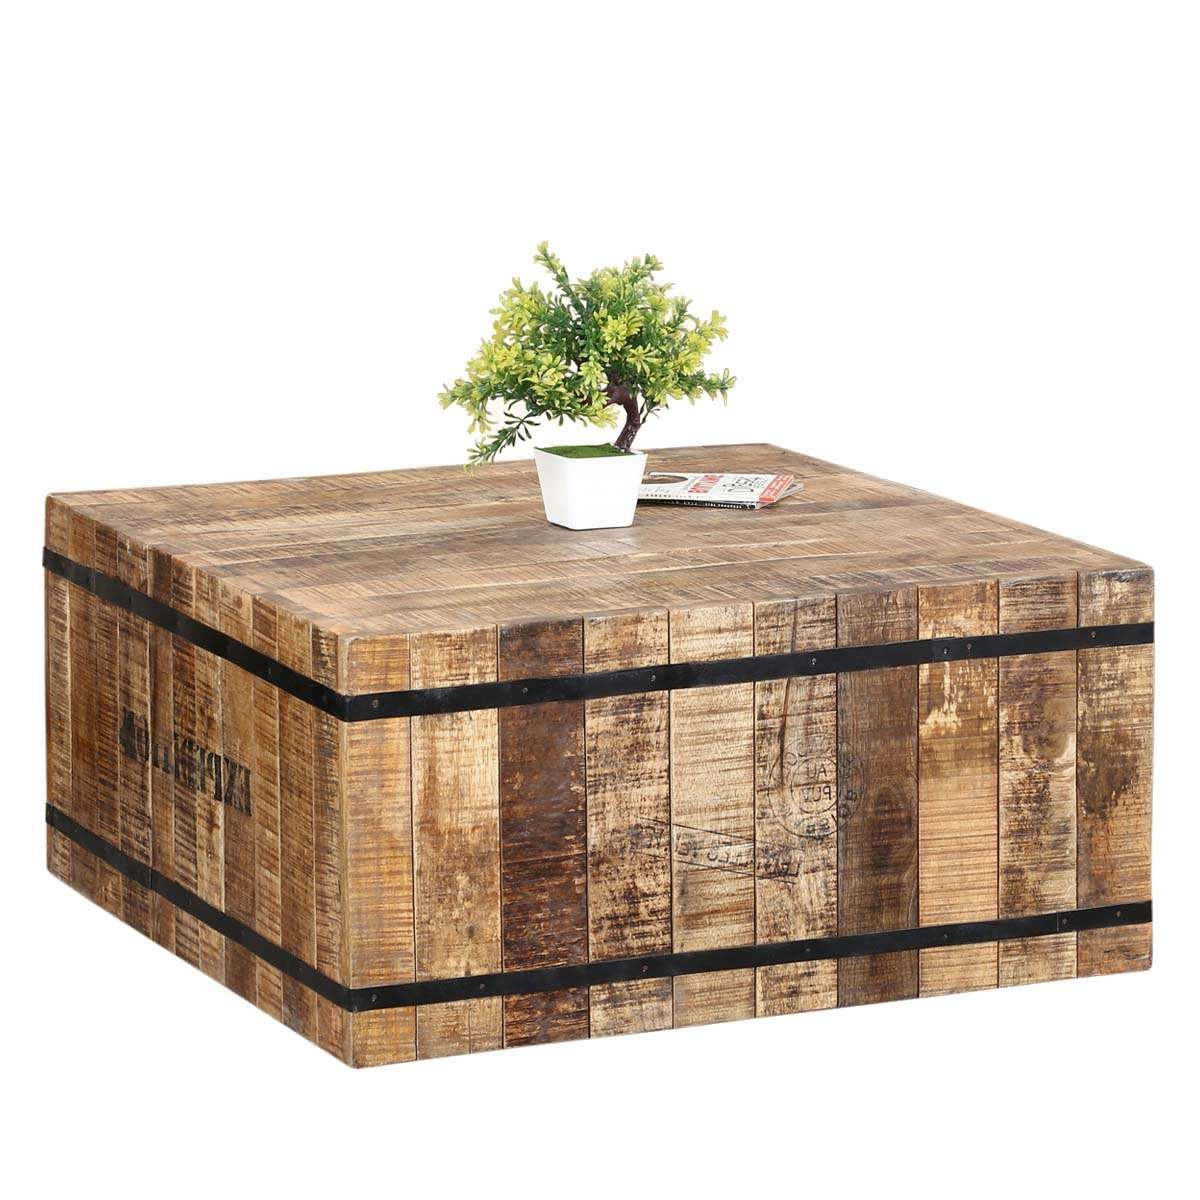 Rustic Mango Wood & Iron Square Box Style Coffee Table Throughout Favorite Rustic Style Coffee Tables (View 11 of 20)